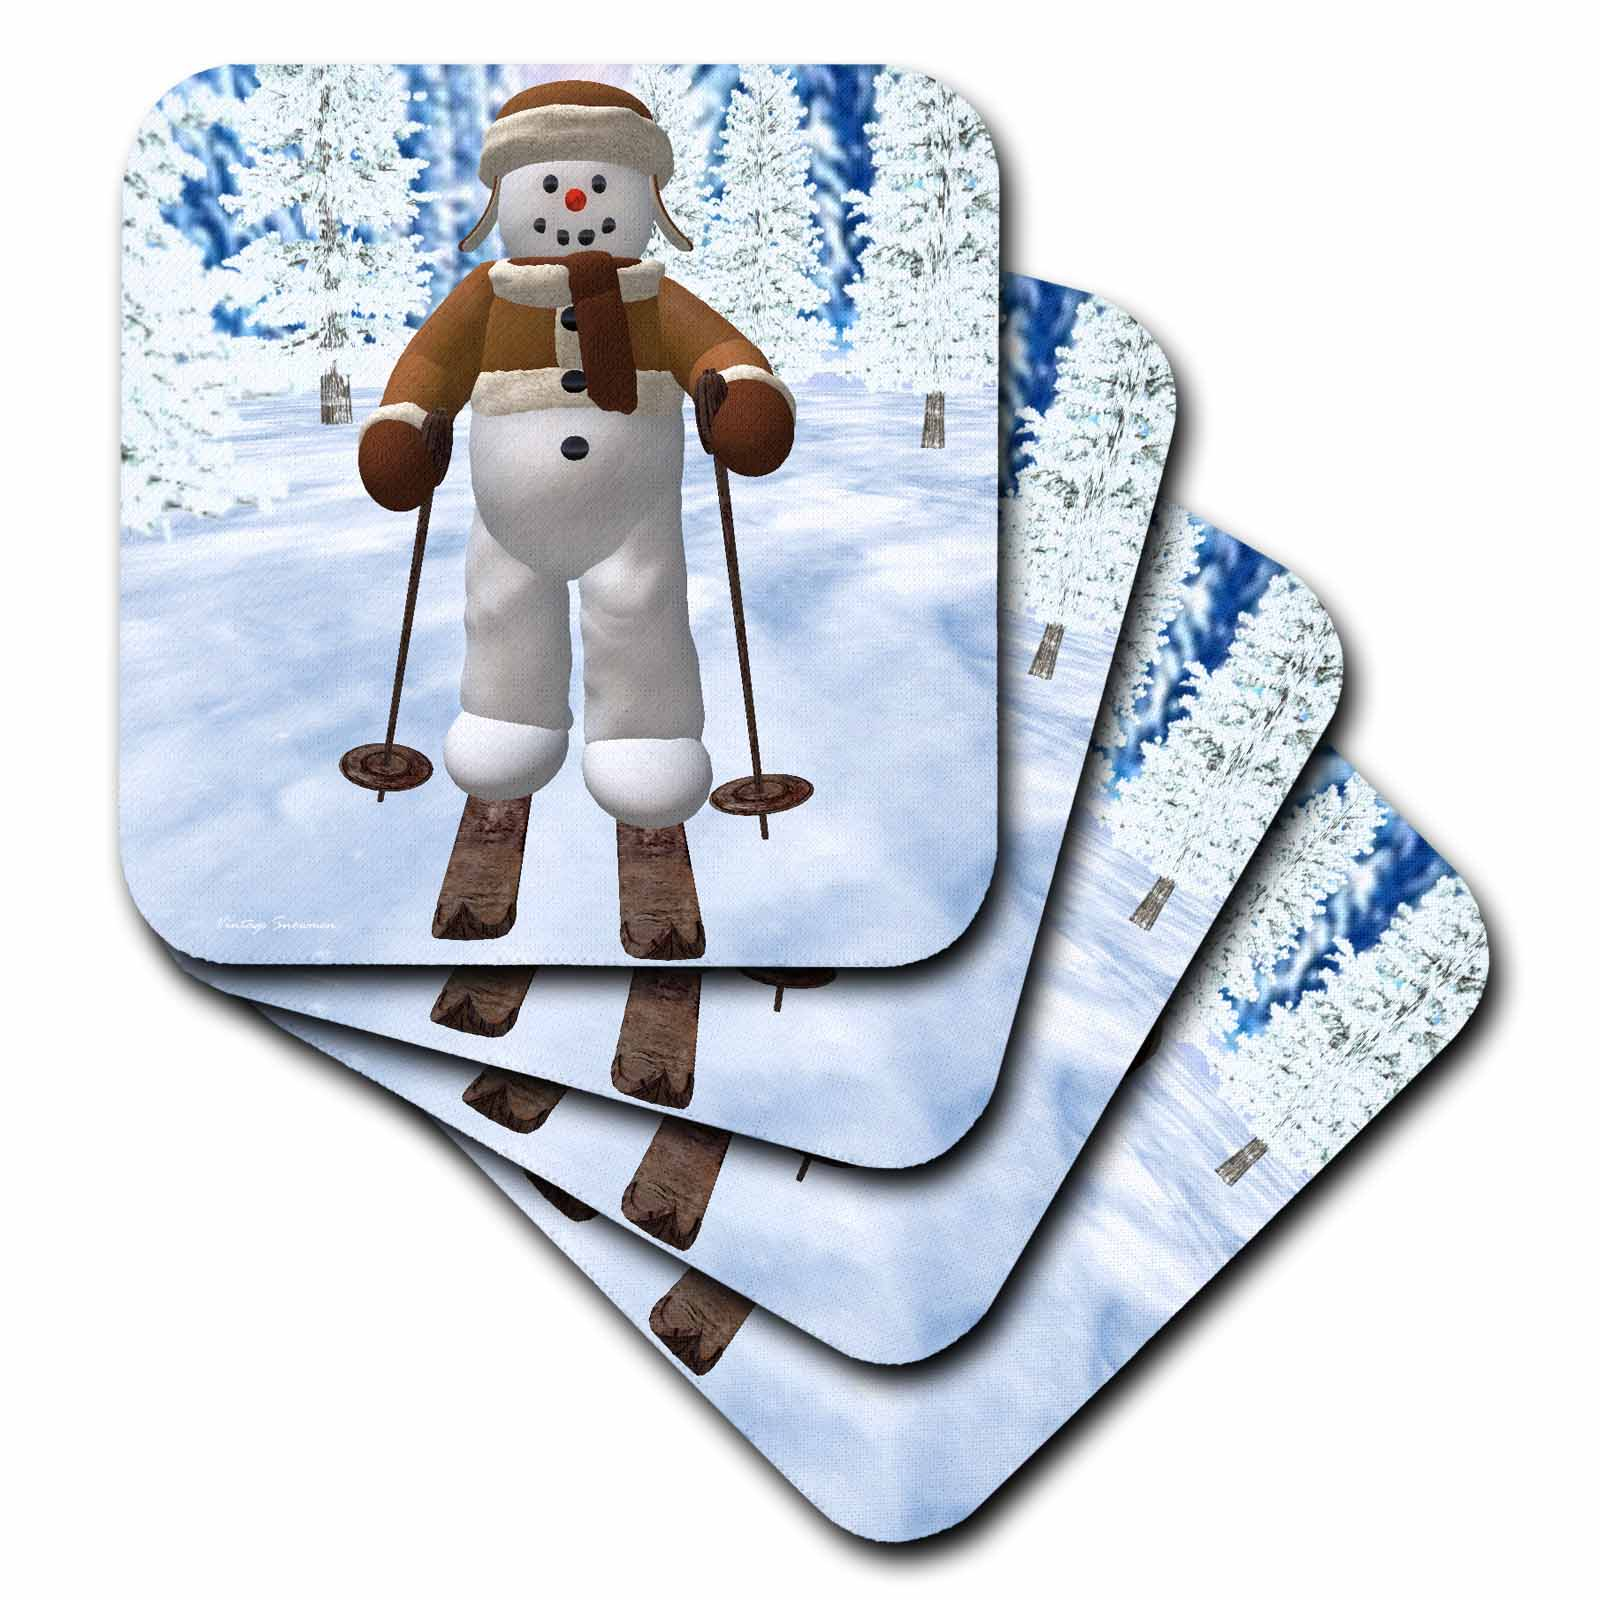 3dRose Skiing Snowman, Ceramic Tile Coasters, set of 4 by 3dRose